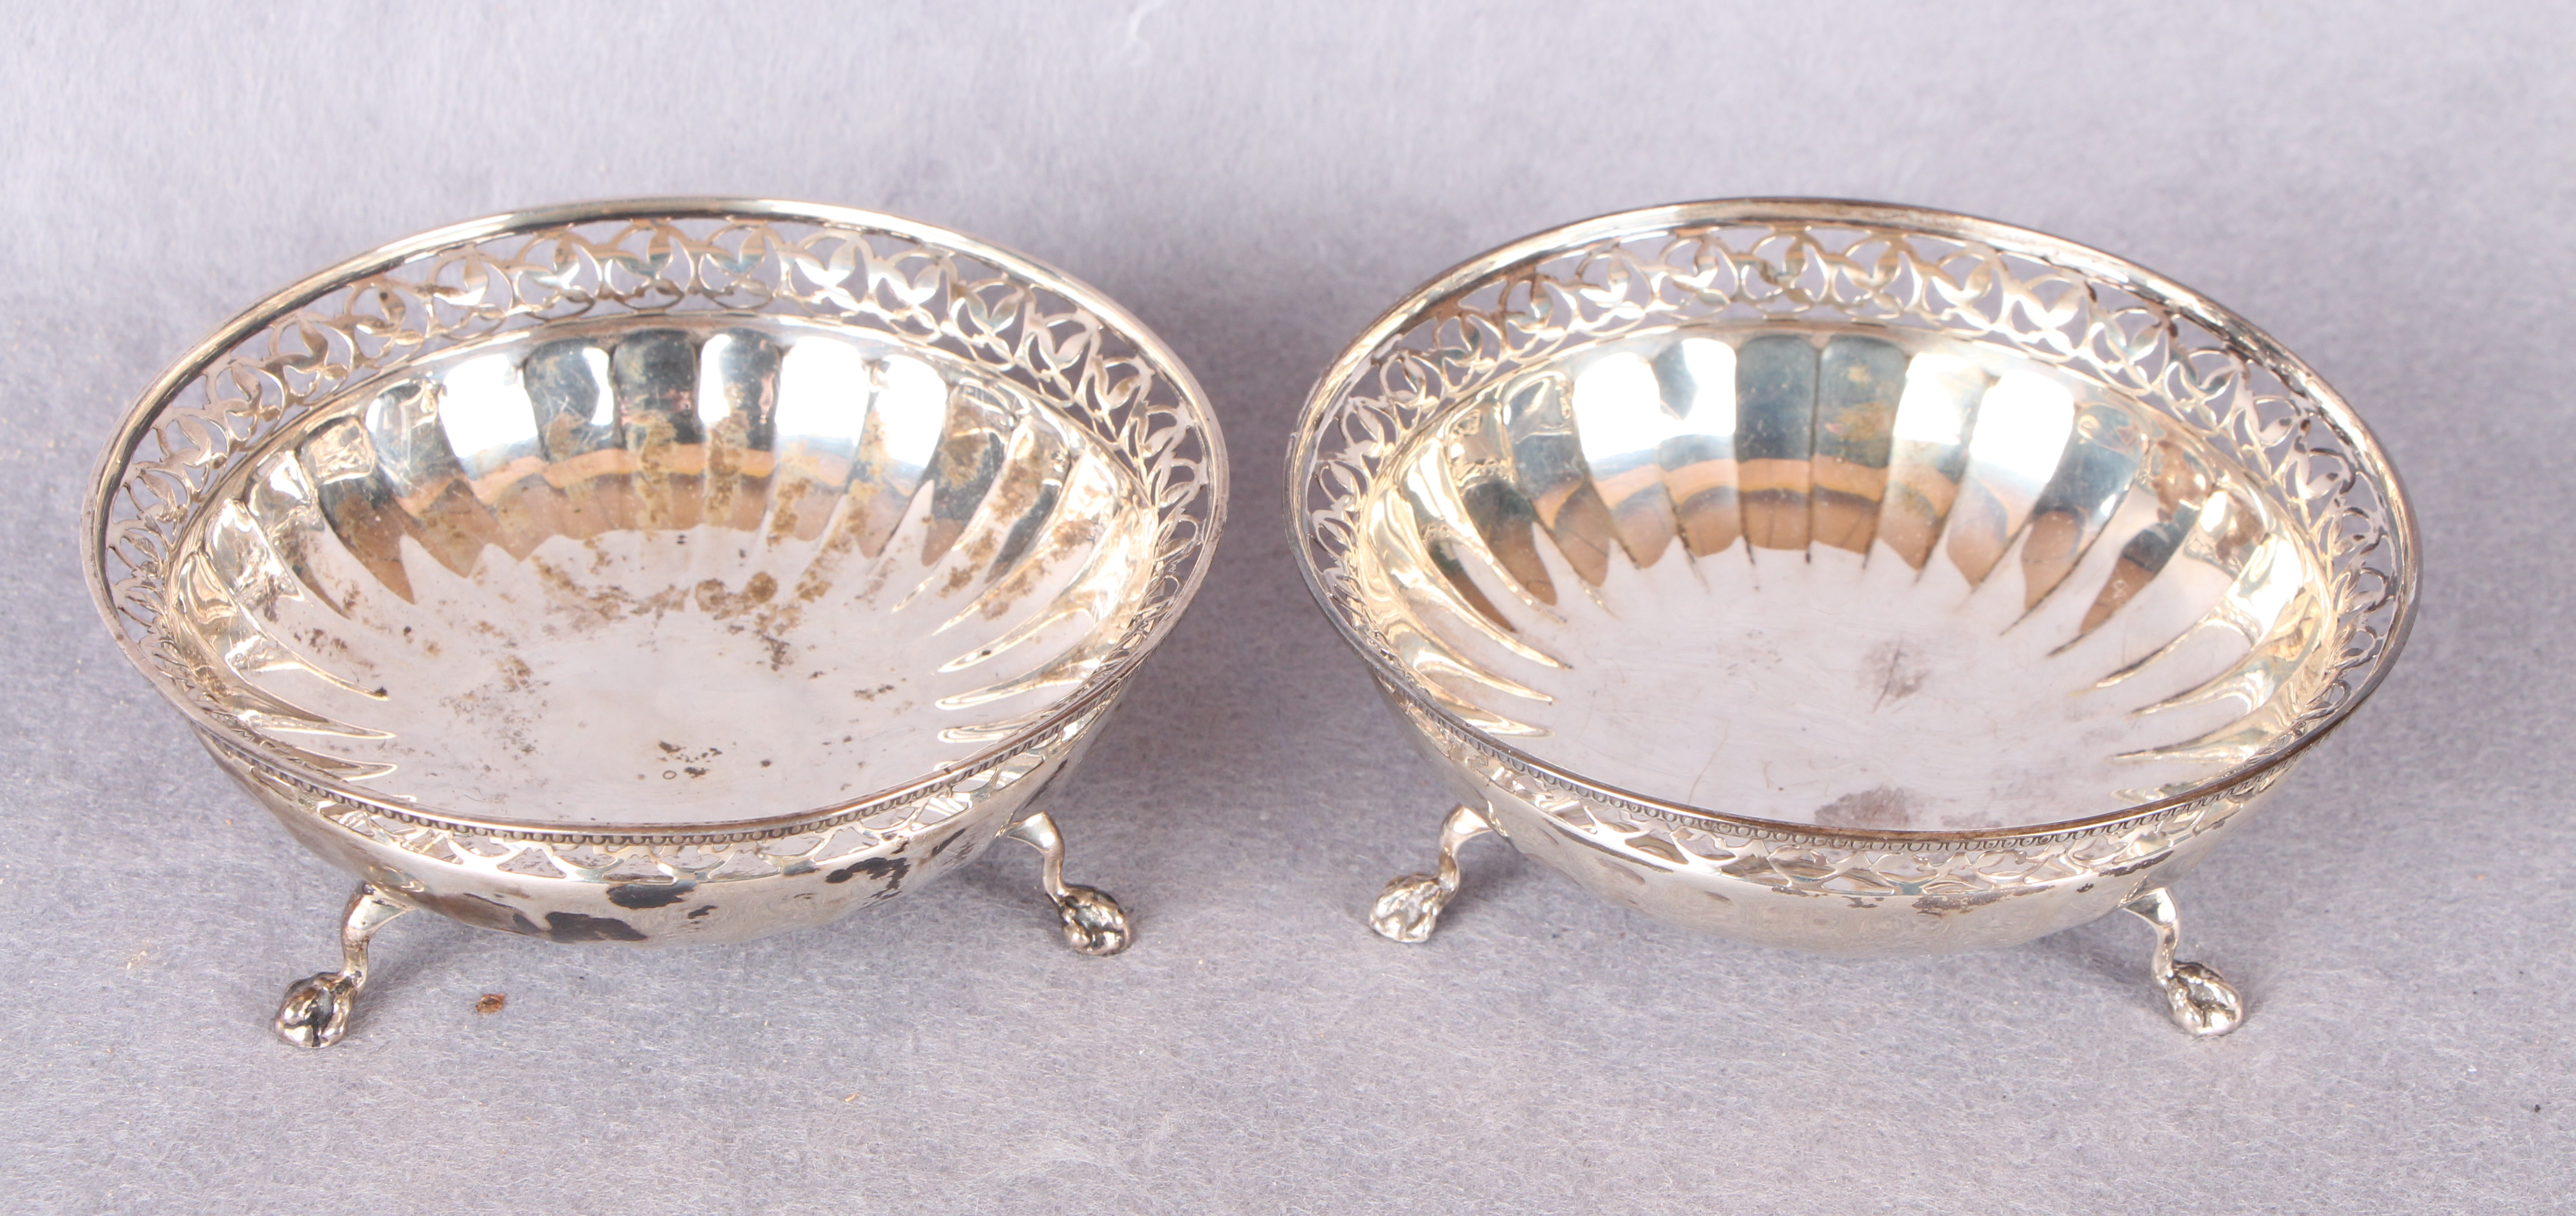 Lot 50 - A pair of circular bon-bon dishes with pierced rims and semi fluted bases, three claw and ball feet,